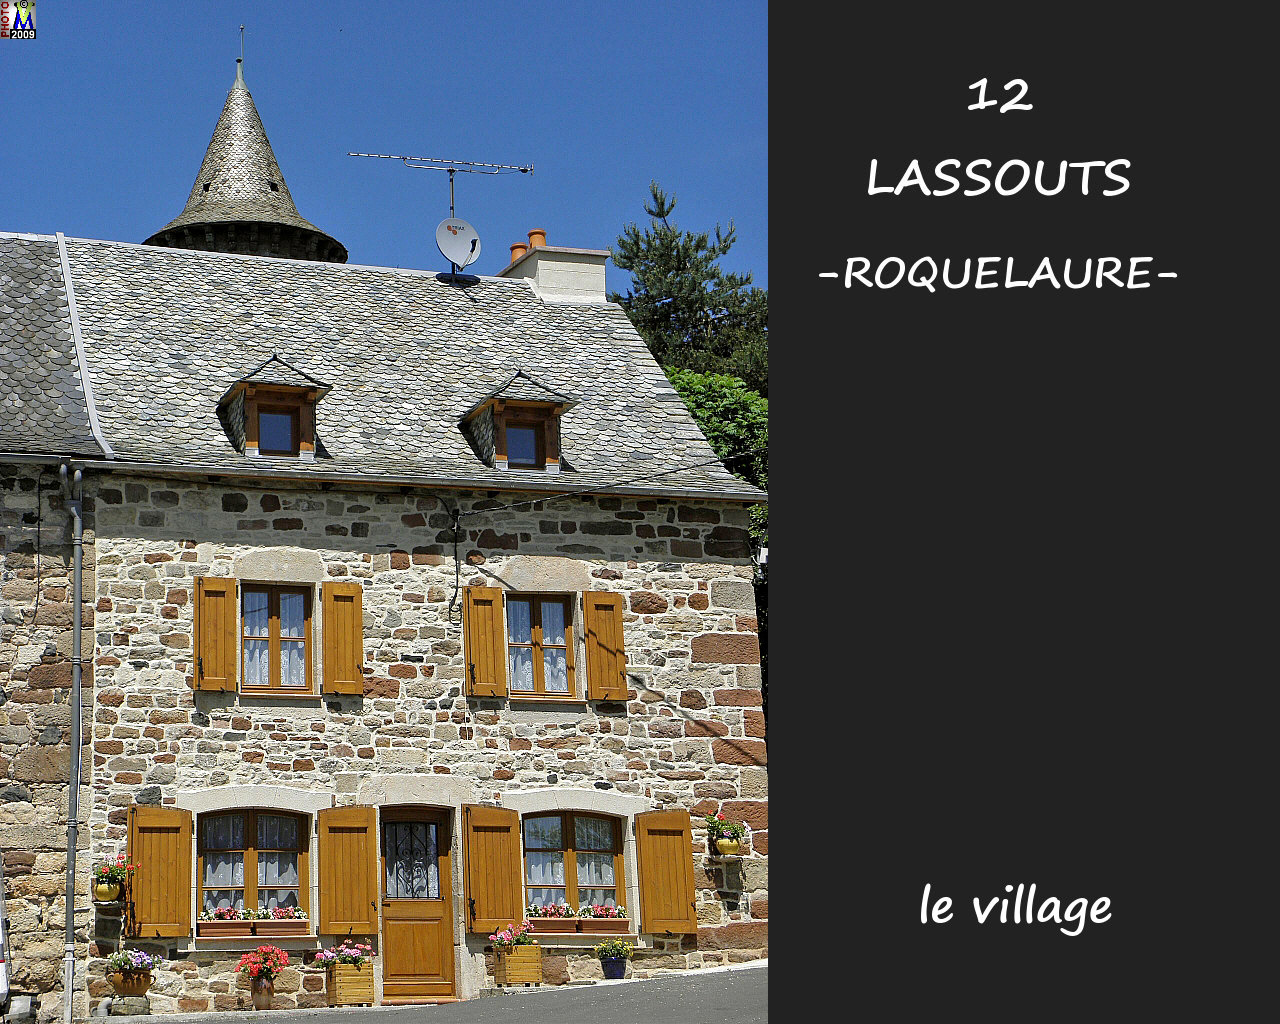 12LASSOUTS-ROQUE_village_104.jpg